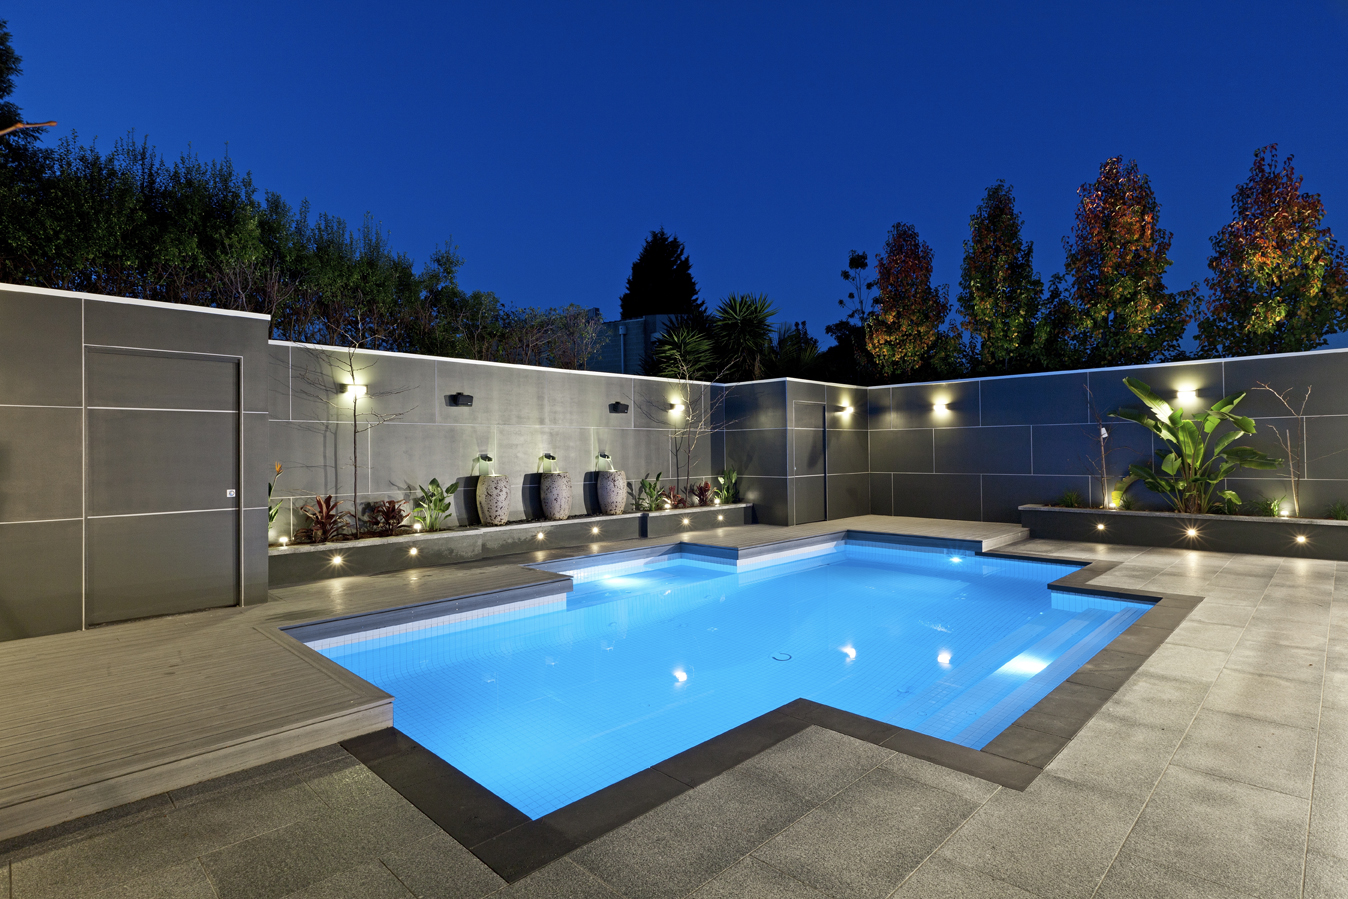 Backyard landscaping ideas swimming pool design for Swimming pool plan